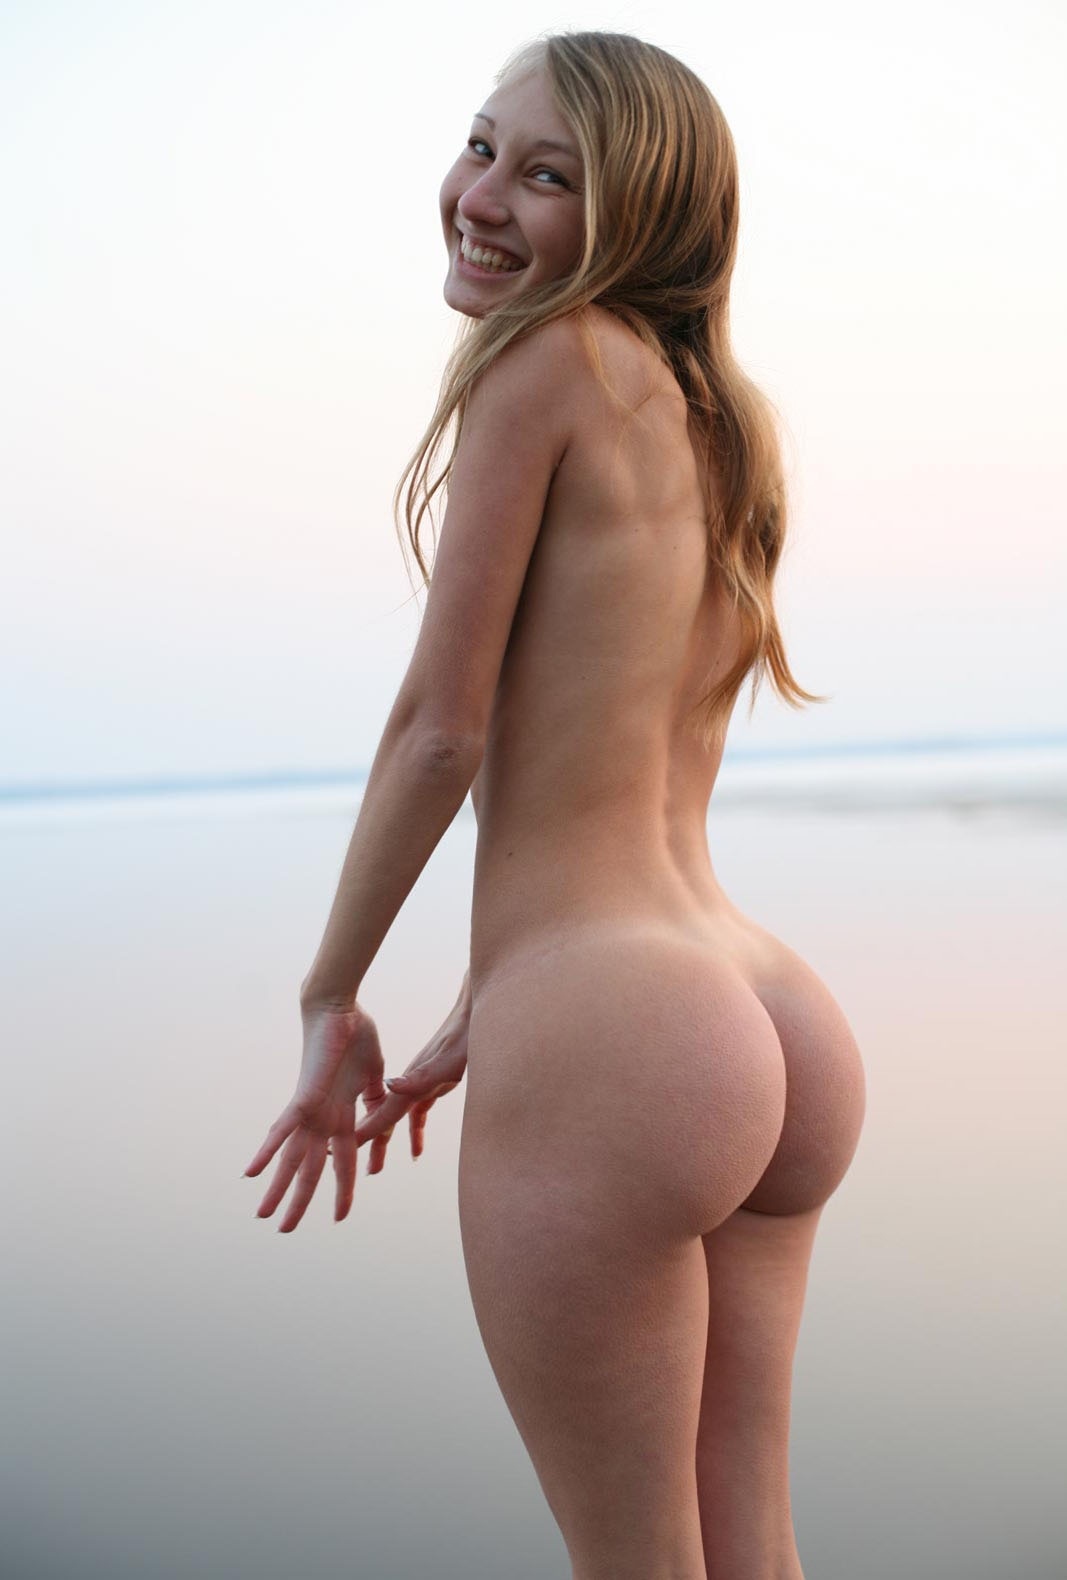 Agree with Big booty on the beach nude